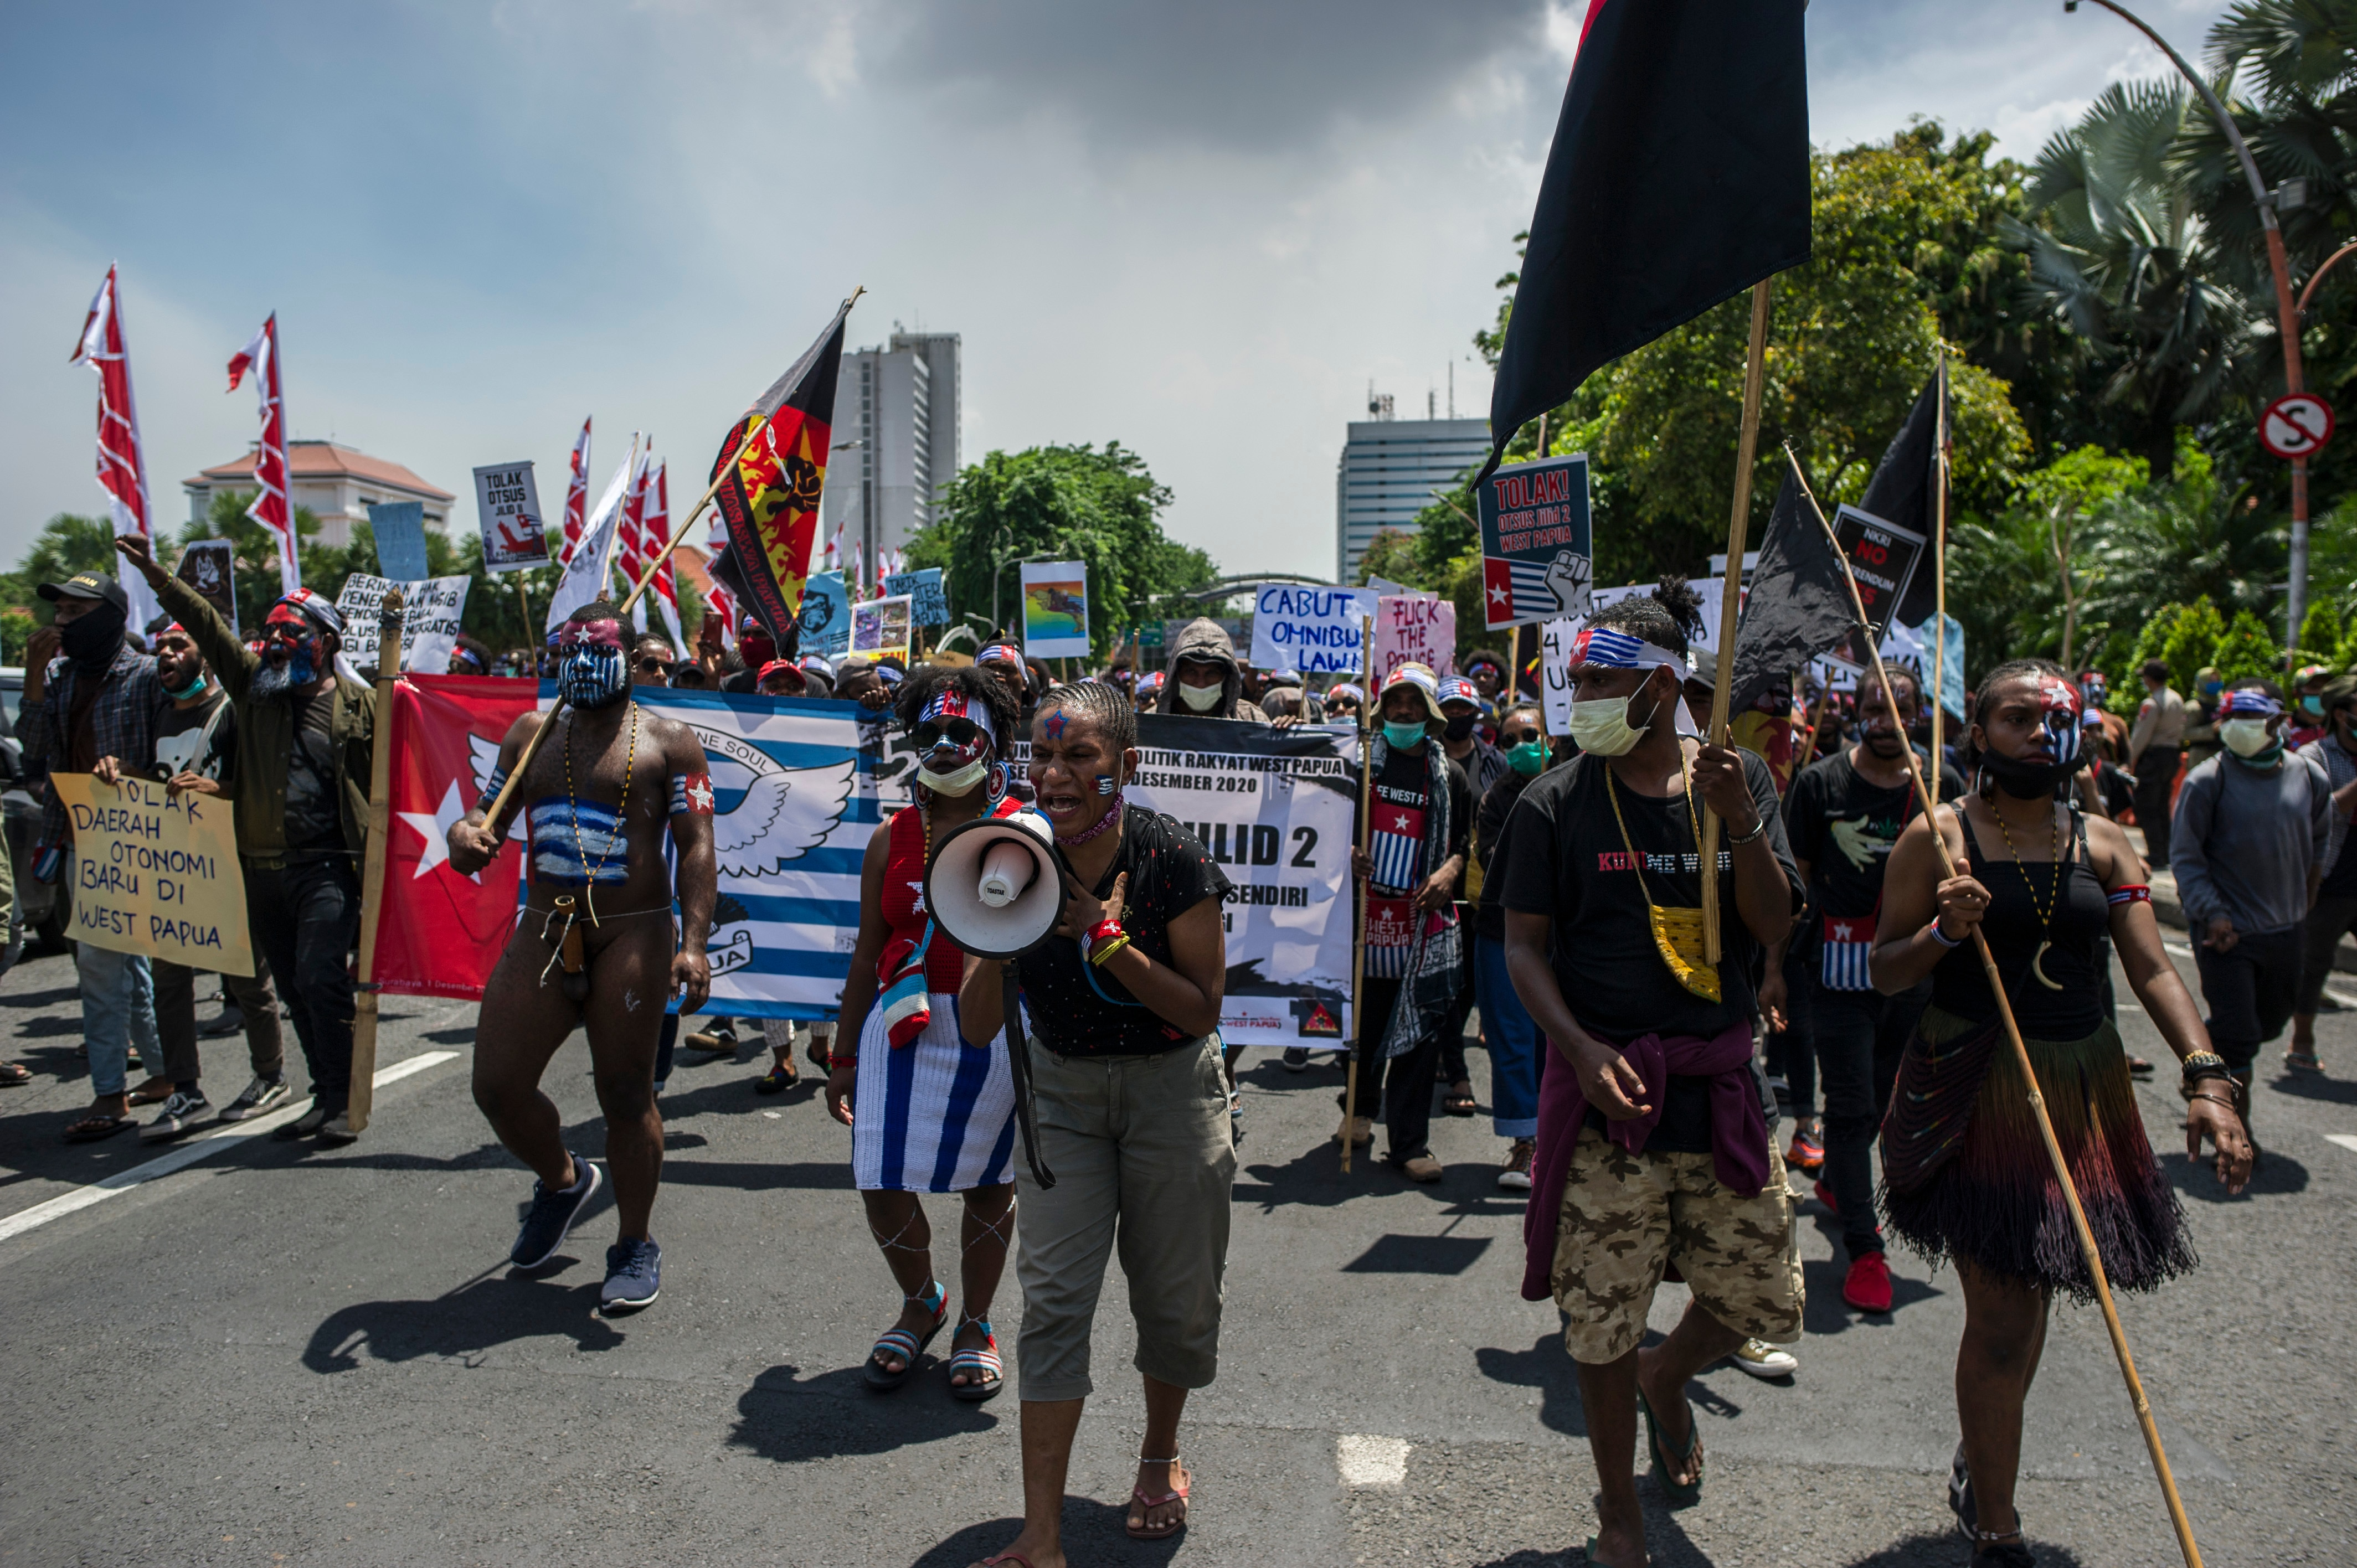 Hundreds of Papuans held rallies across at least eight cities in Indonesia on Tuesday to renew calls for independence.